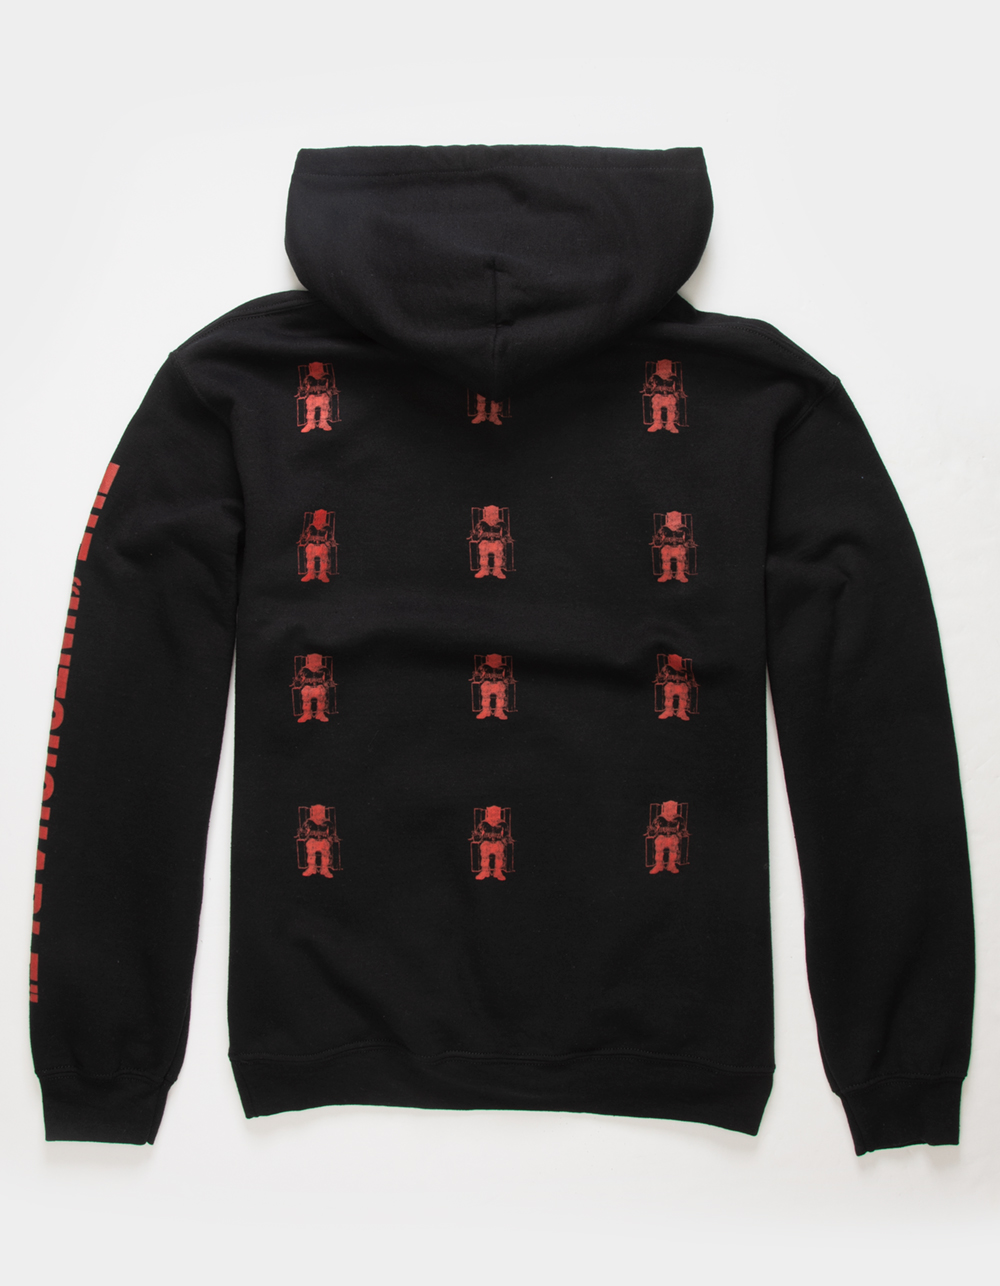 Image of DEATH ROW RECORDS LOGO HOODIE